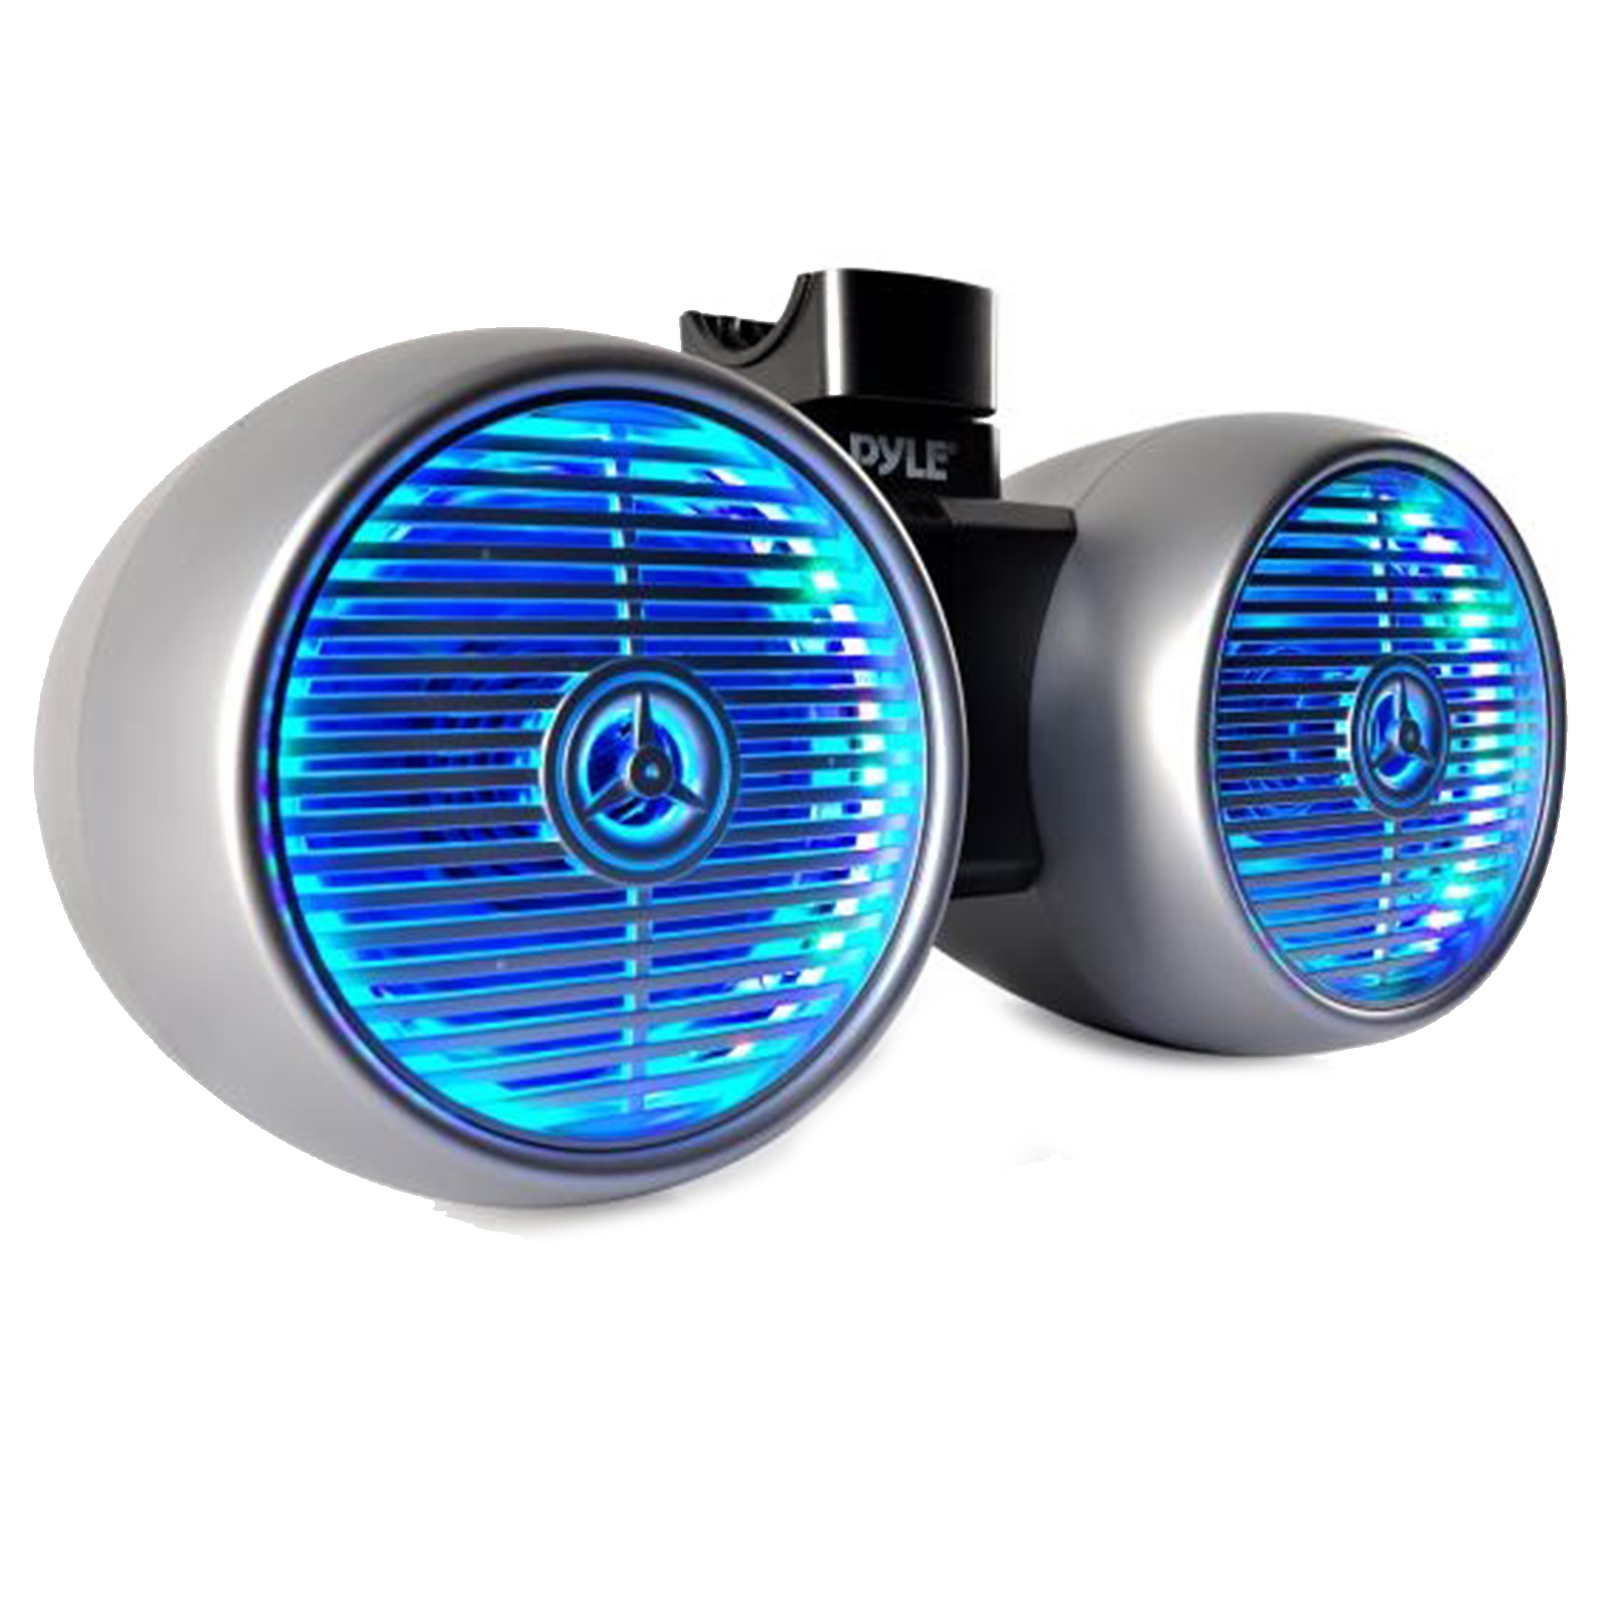 """Dual Marine Tower Speakers, Wakeboard Water Resistant Sound System, Built-in Programmable Multi-Color LED Lights, 600 Watt 8"""" Tower Speakers, Remote Control, Silver"""